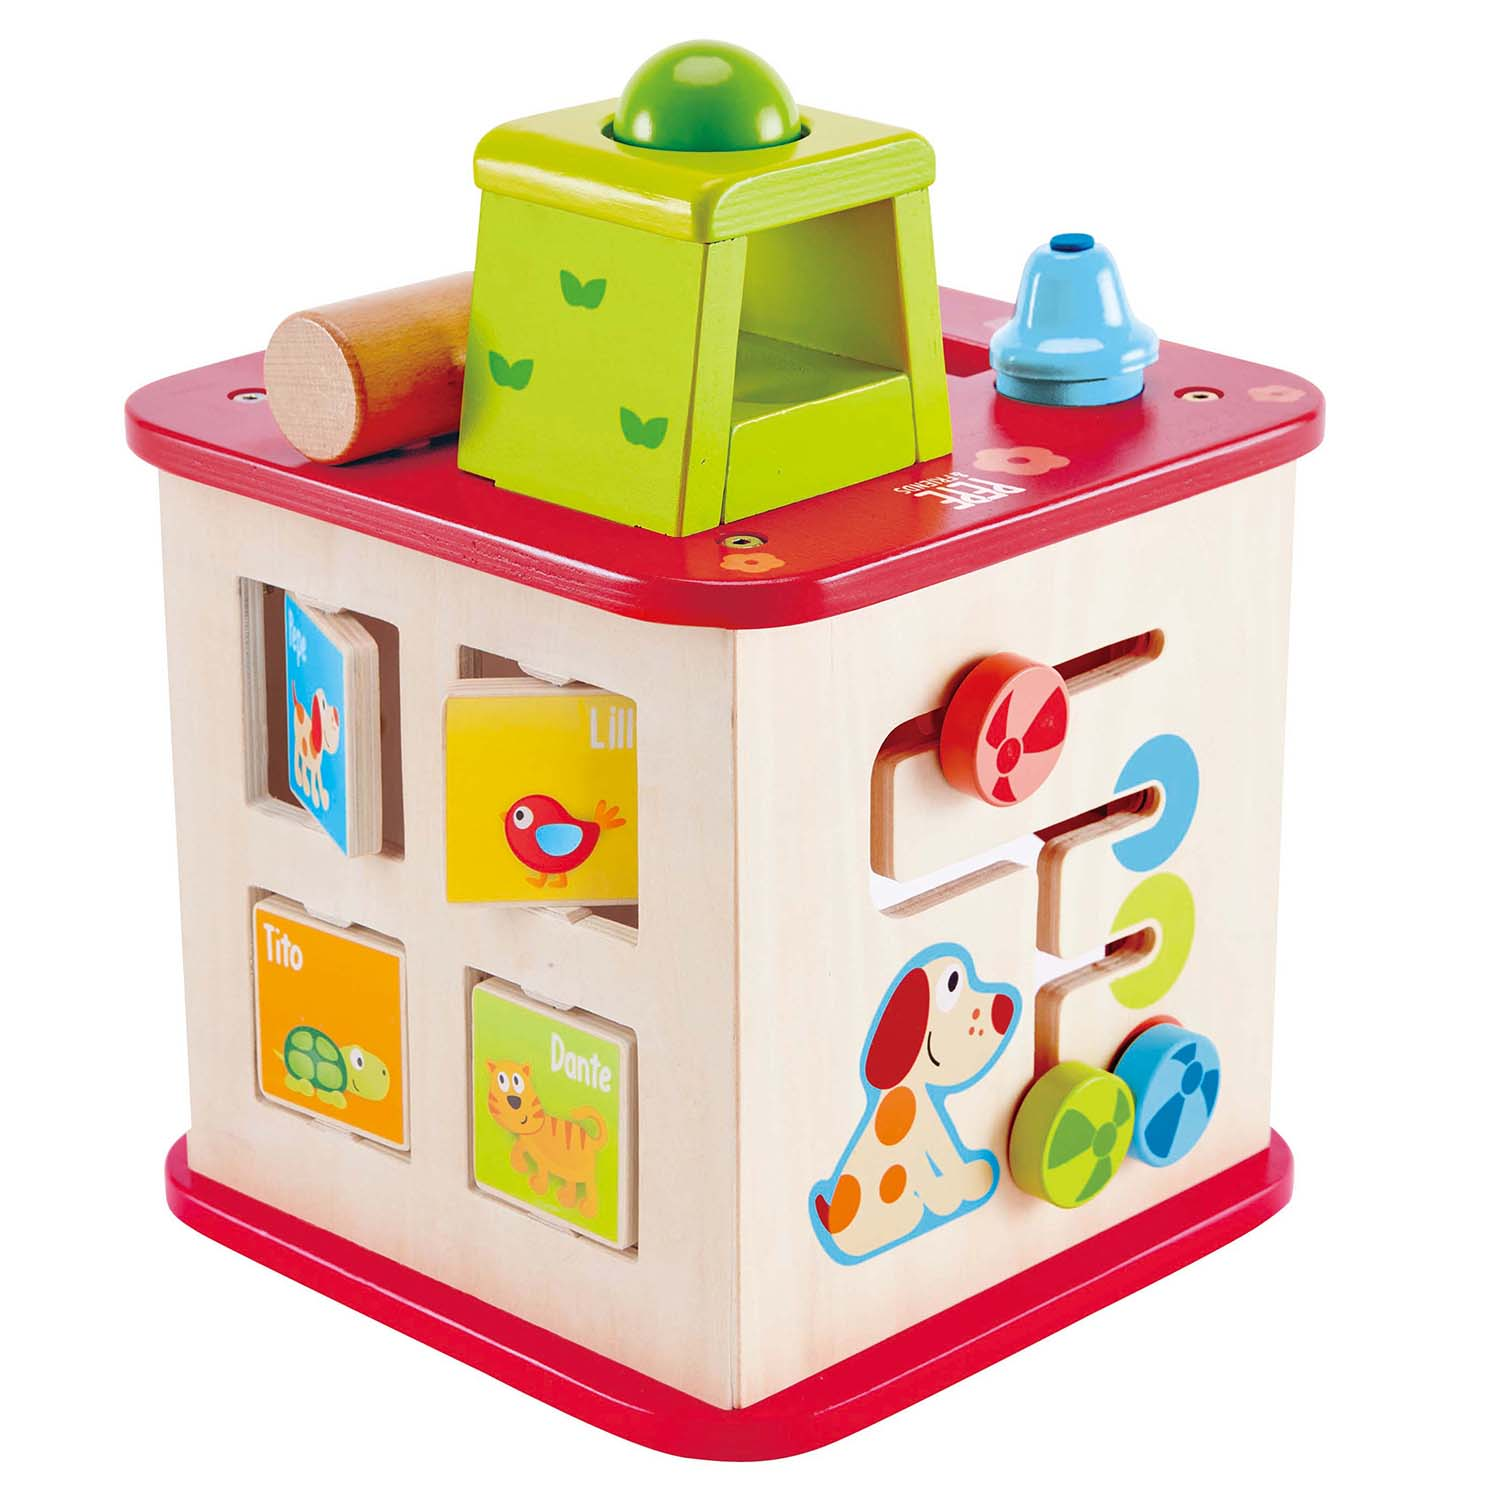 Hape Wooden Toys Educational Toy Dollhouse Wooden